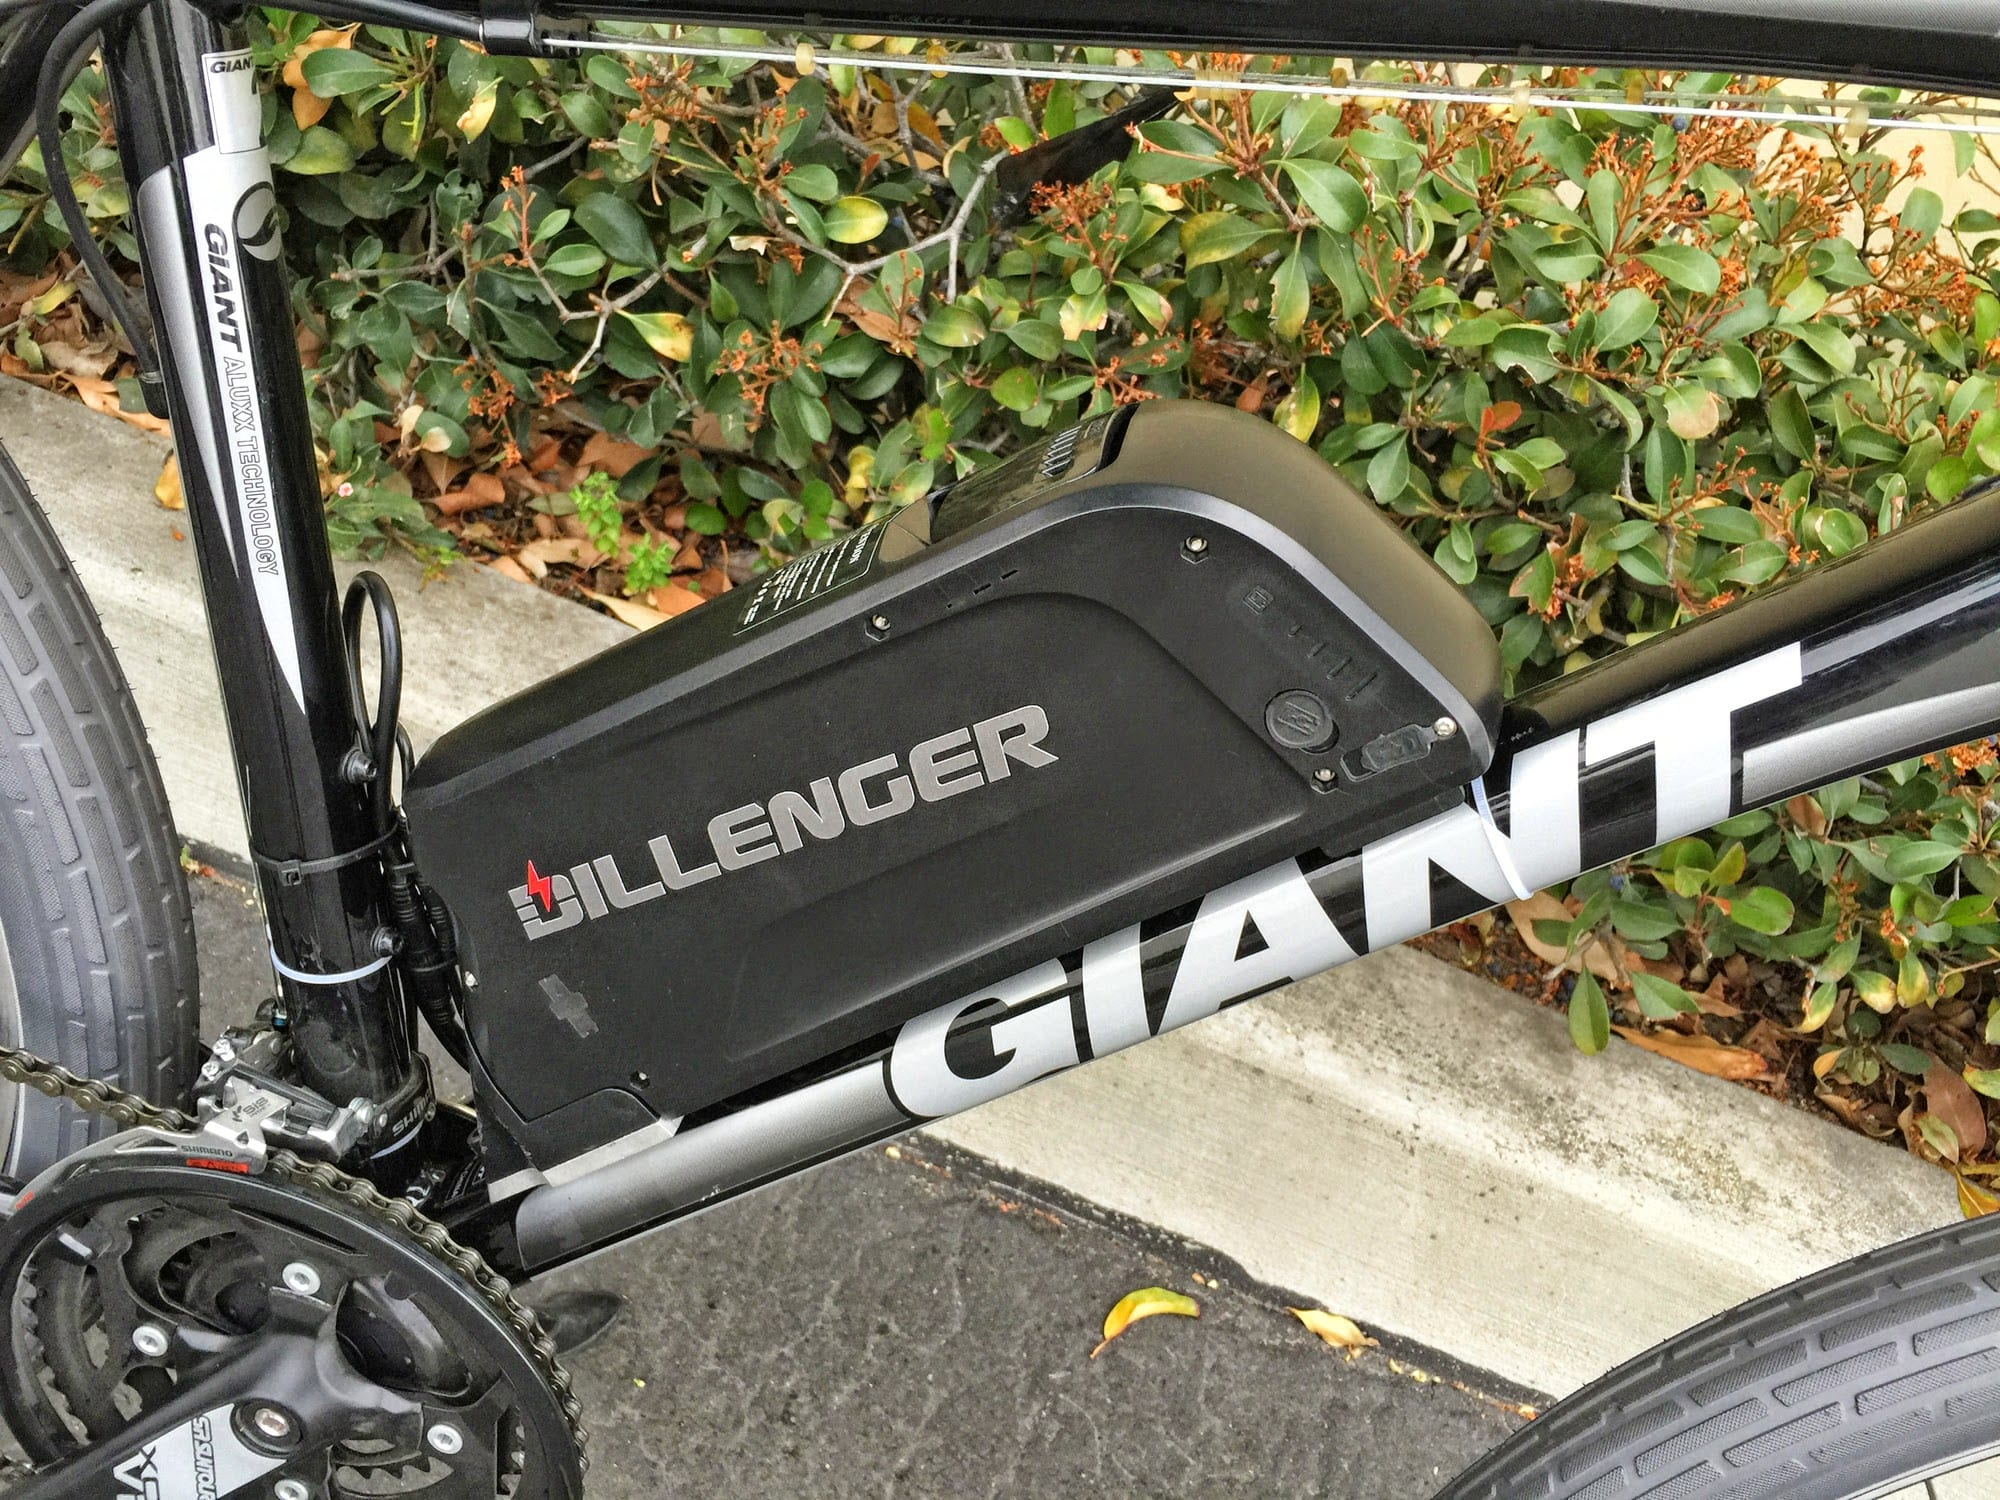 Dillenger ... & Dillenger 350W Geared Electric Bike Kit Review - Prices Specs ... Aboutintivar.Com